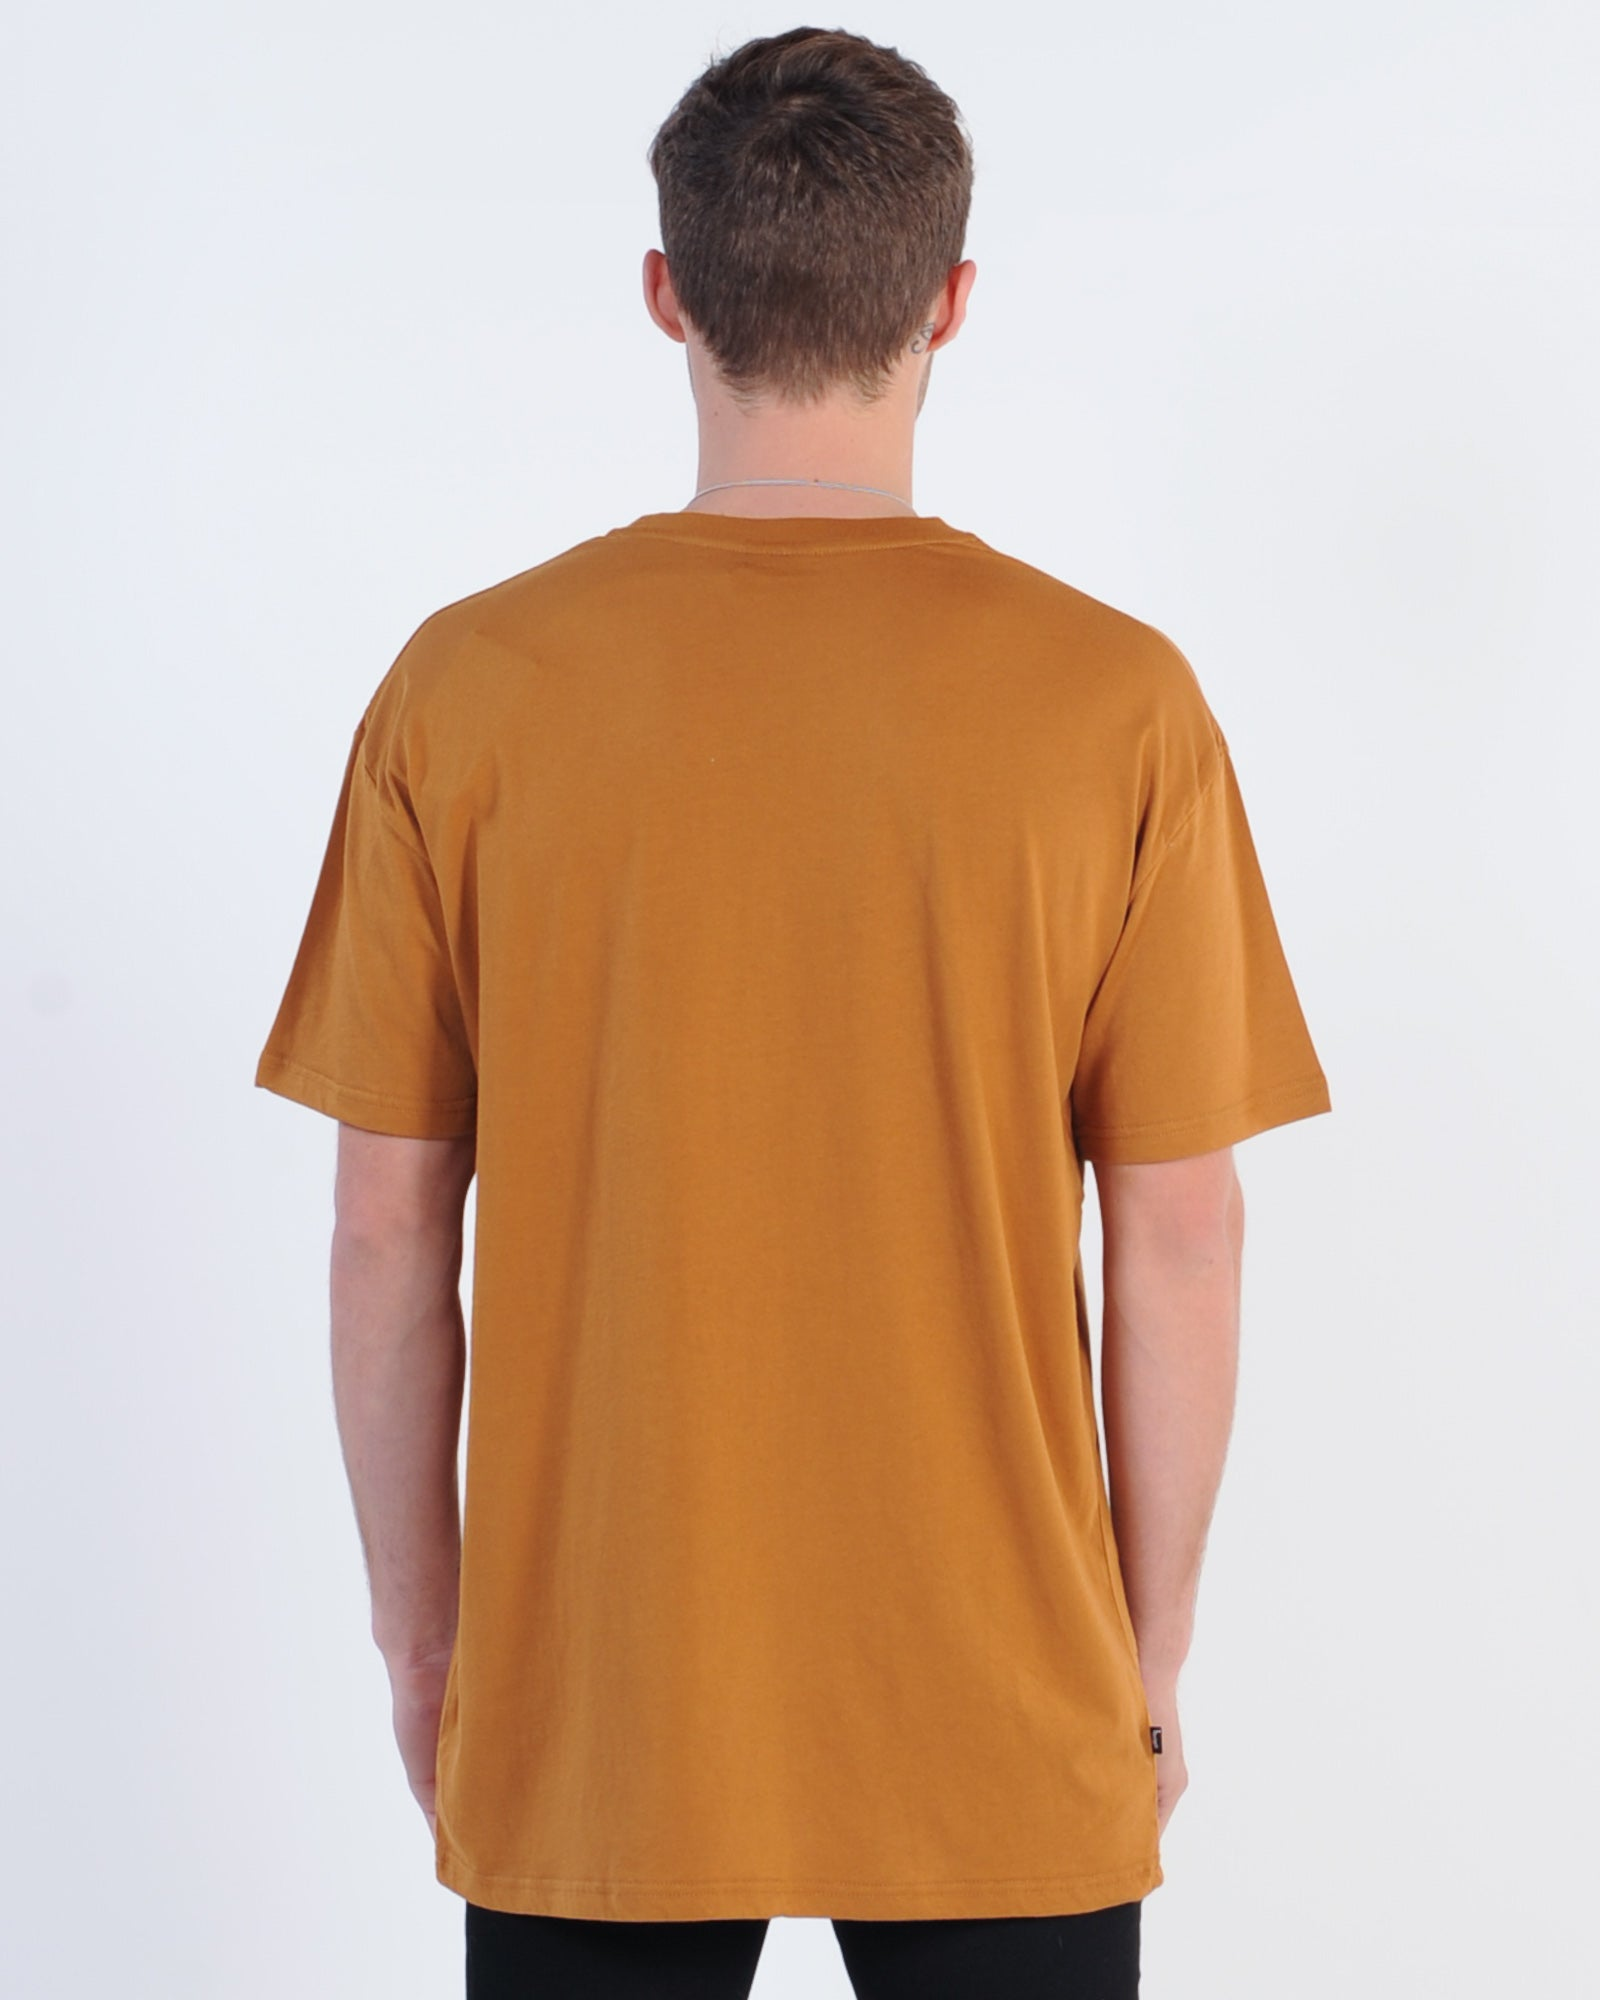 Stussy Burly Threads Tee - Tan